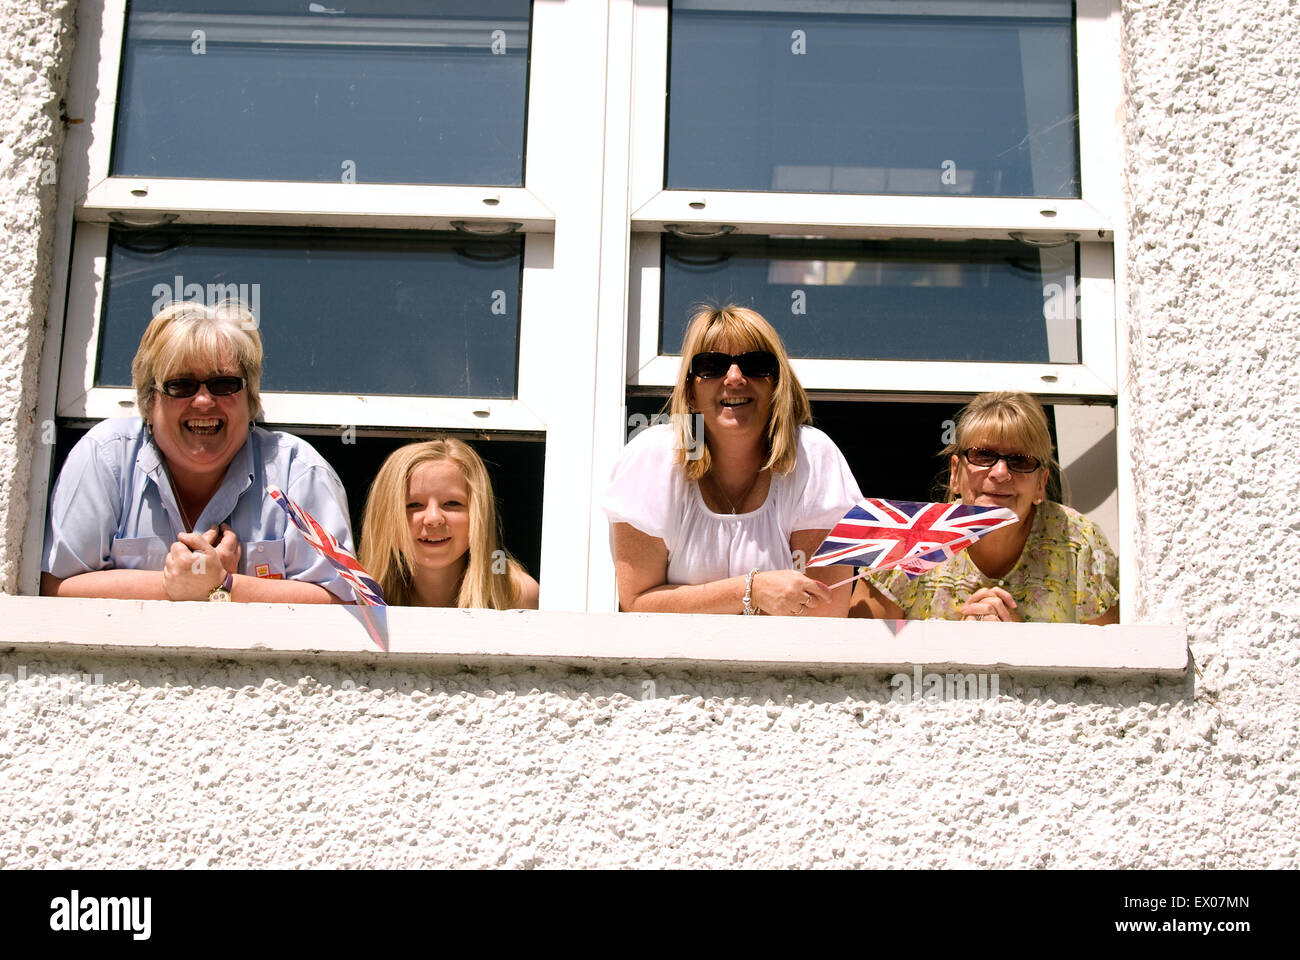 Onlookers enjoying the military procession during the Farewell to the Garrison Festival, Bordon, Hampshire, UK. - Stock Image